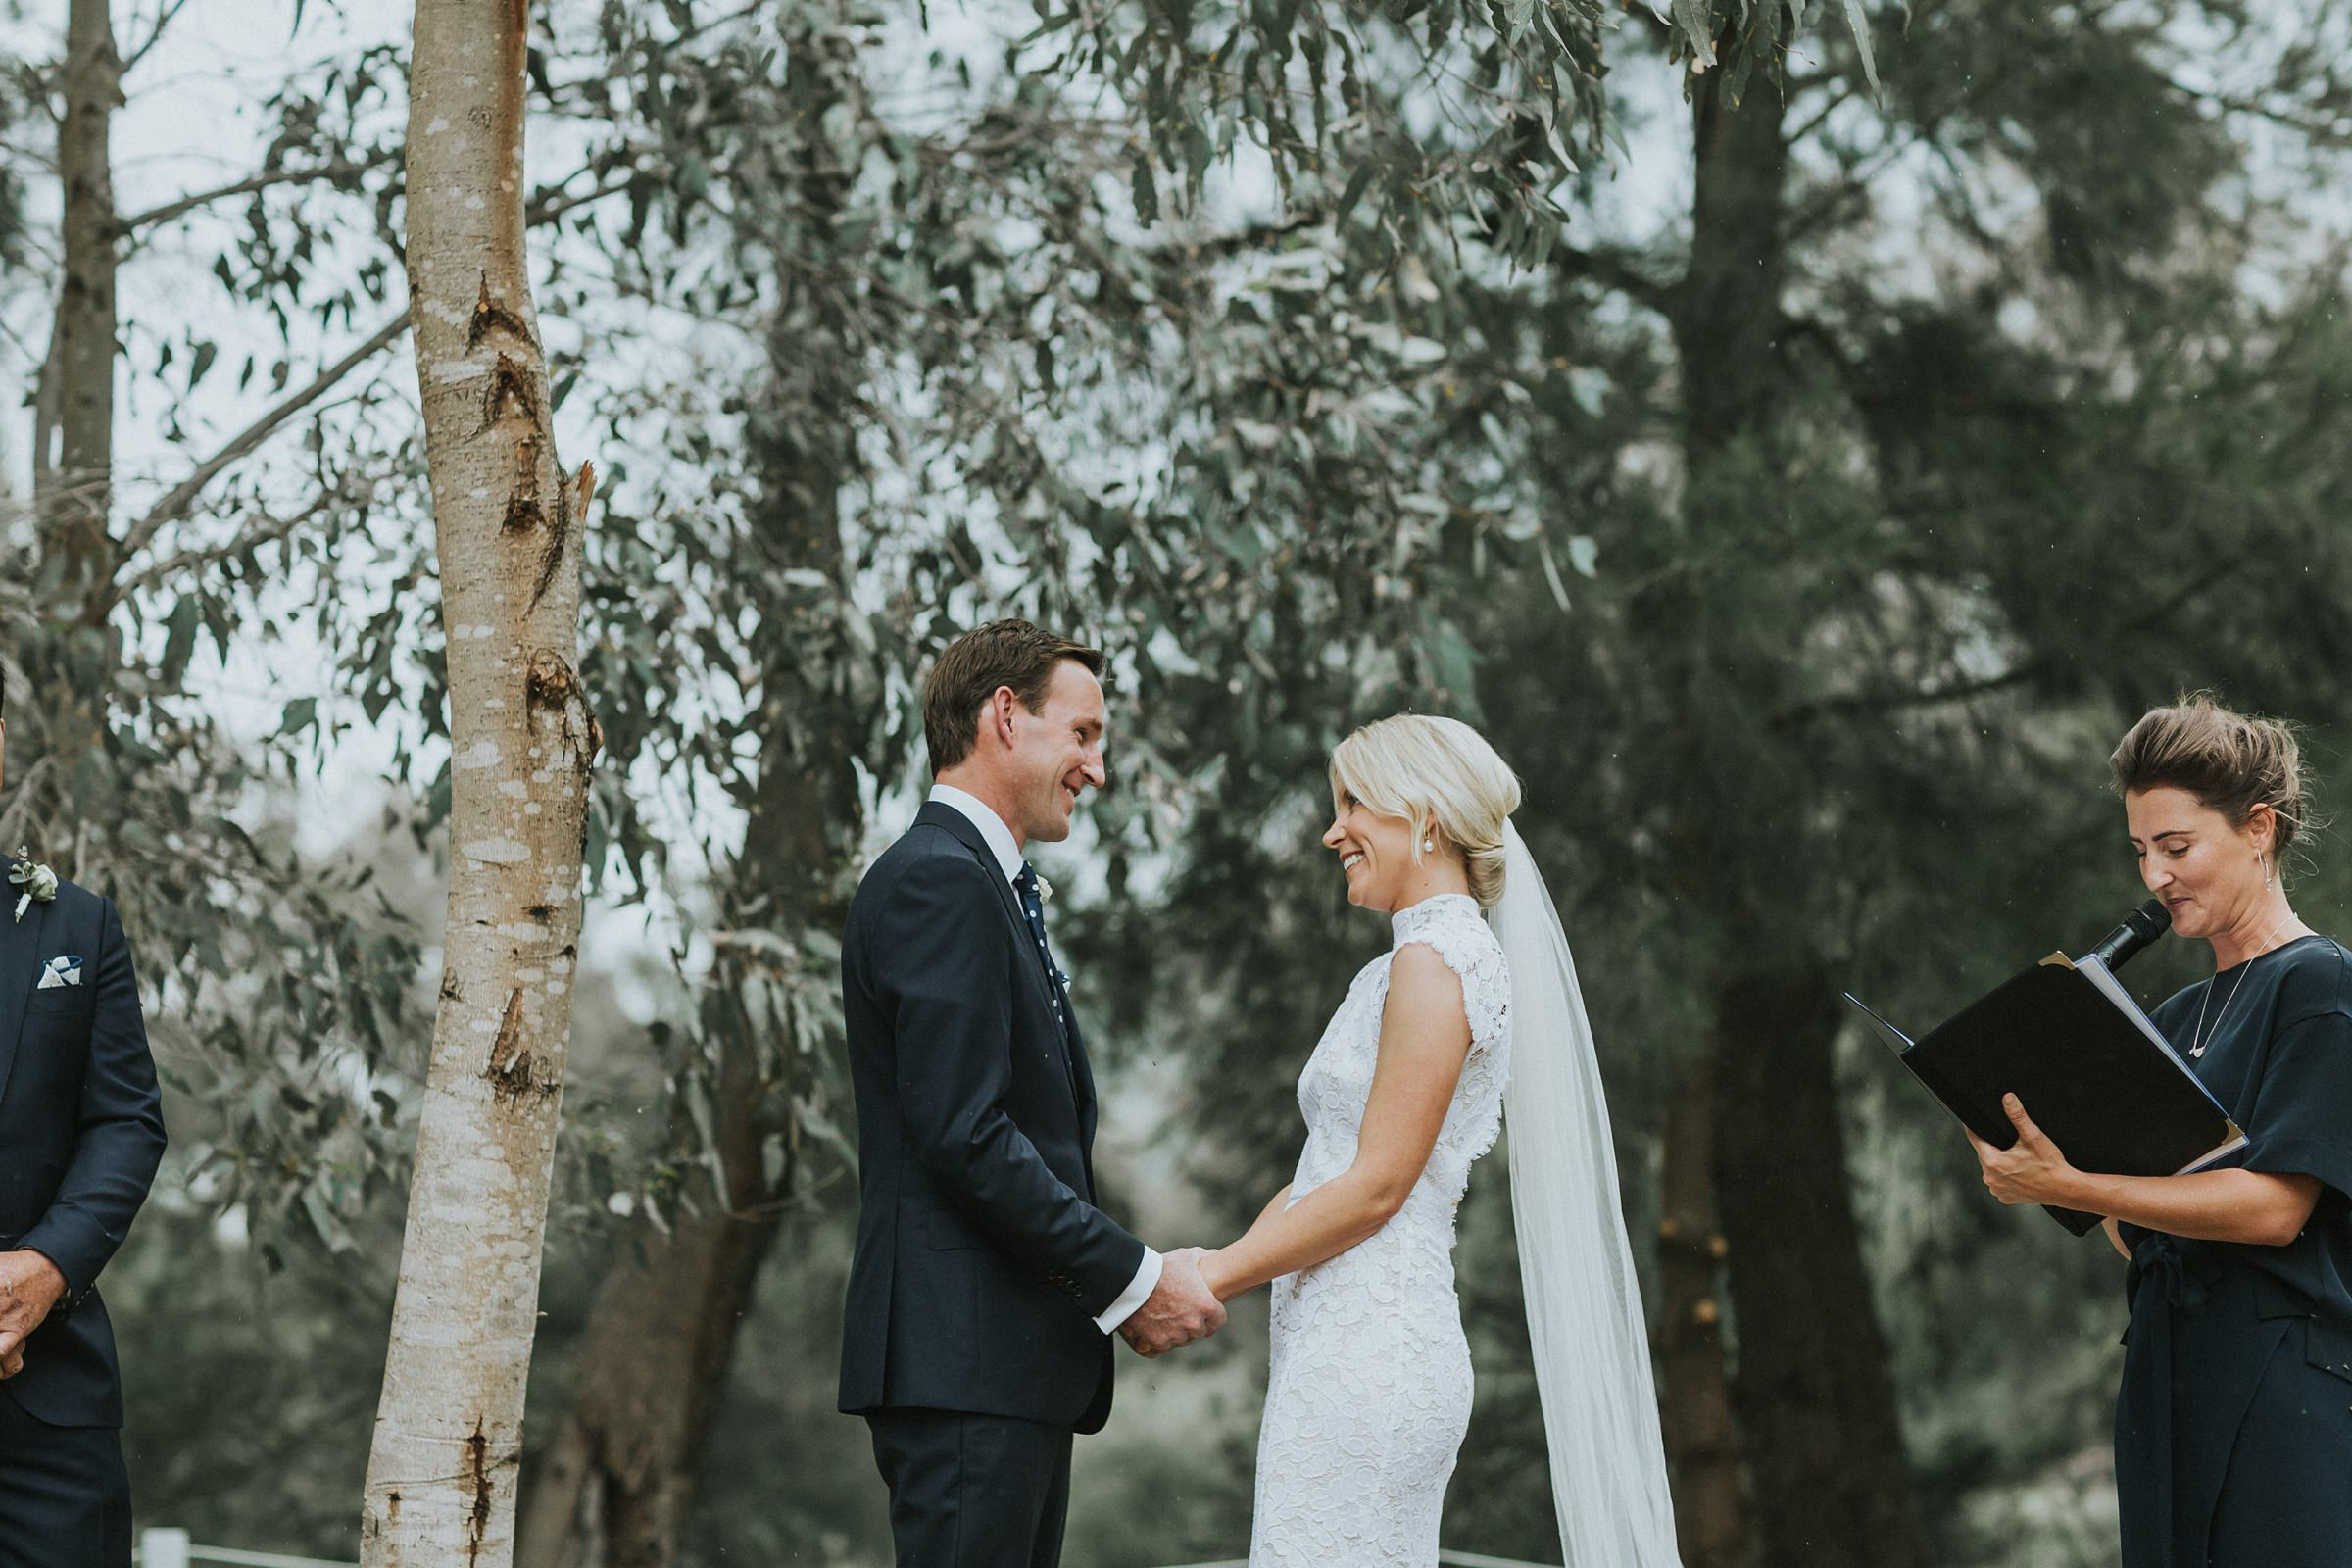 tumut nsw wedding ceremony photographed by jonathan david